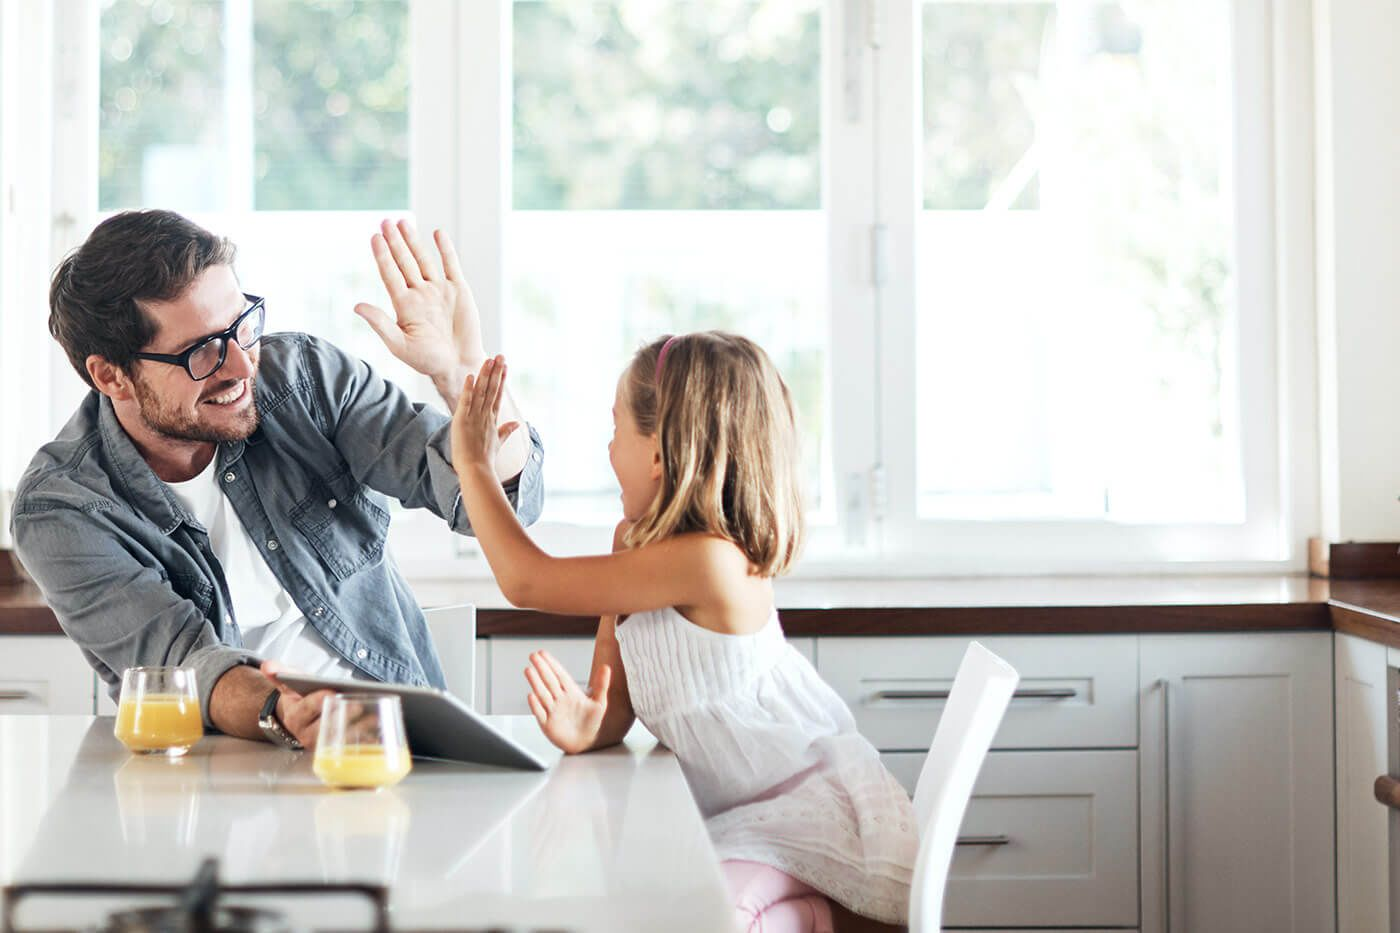 A dad giving his daughter a high-five in the kitchen while holding a tablet